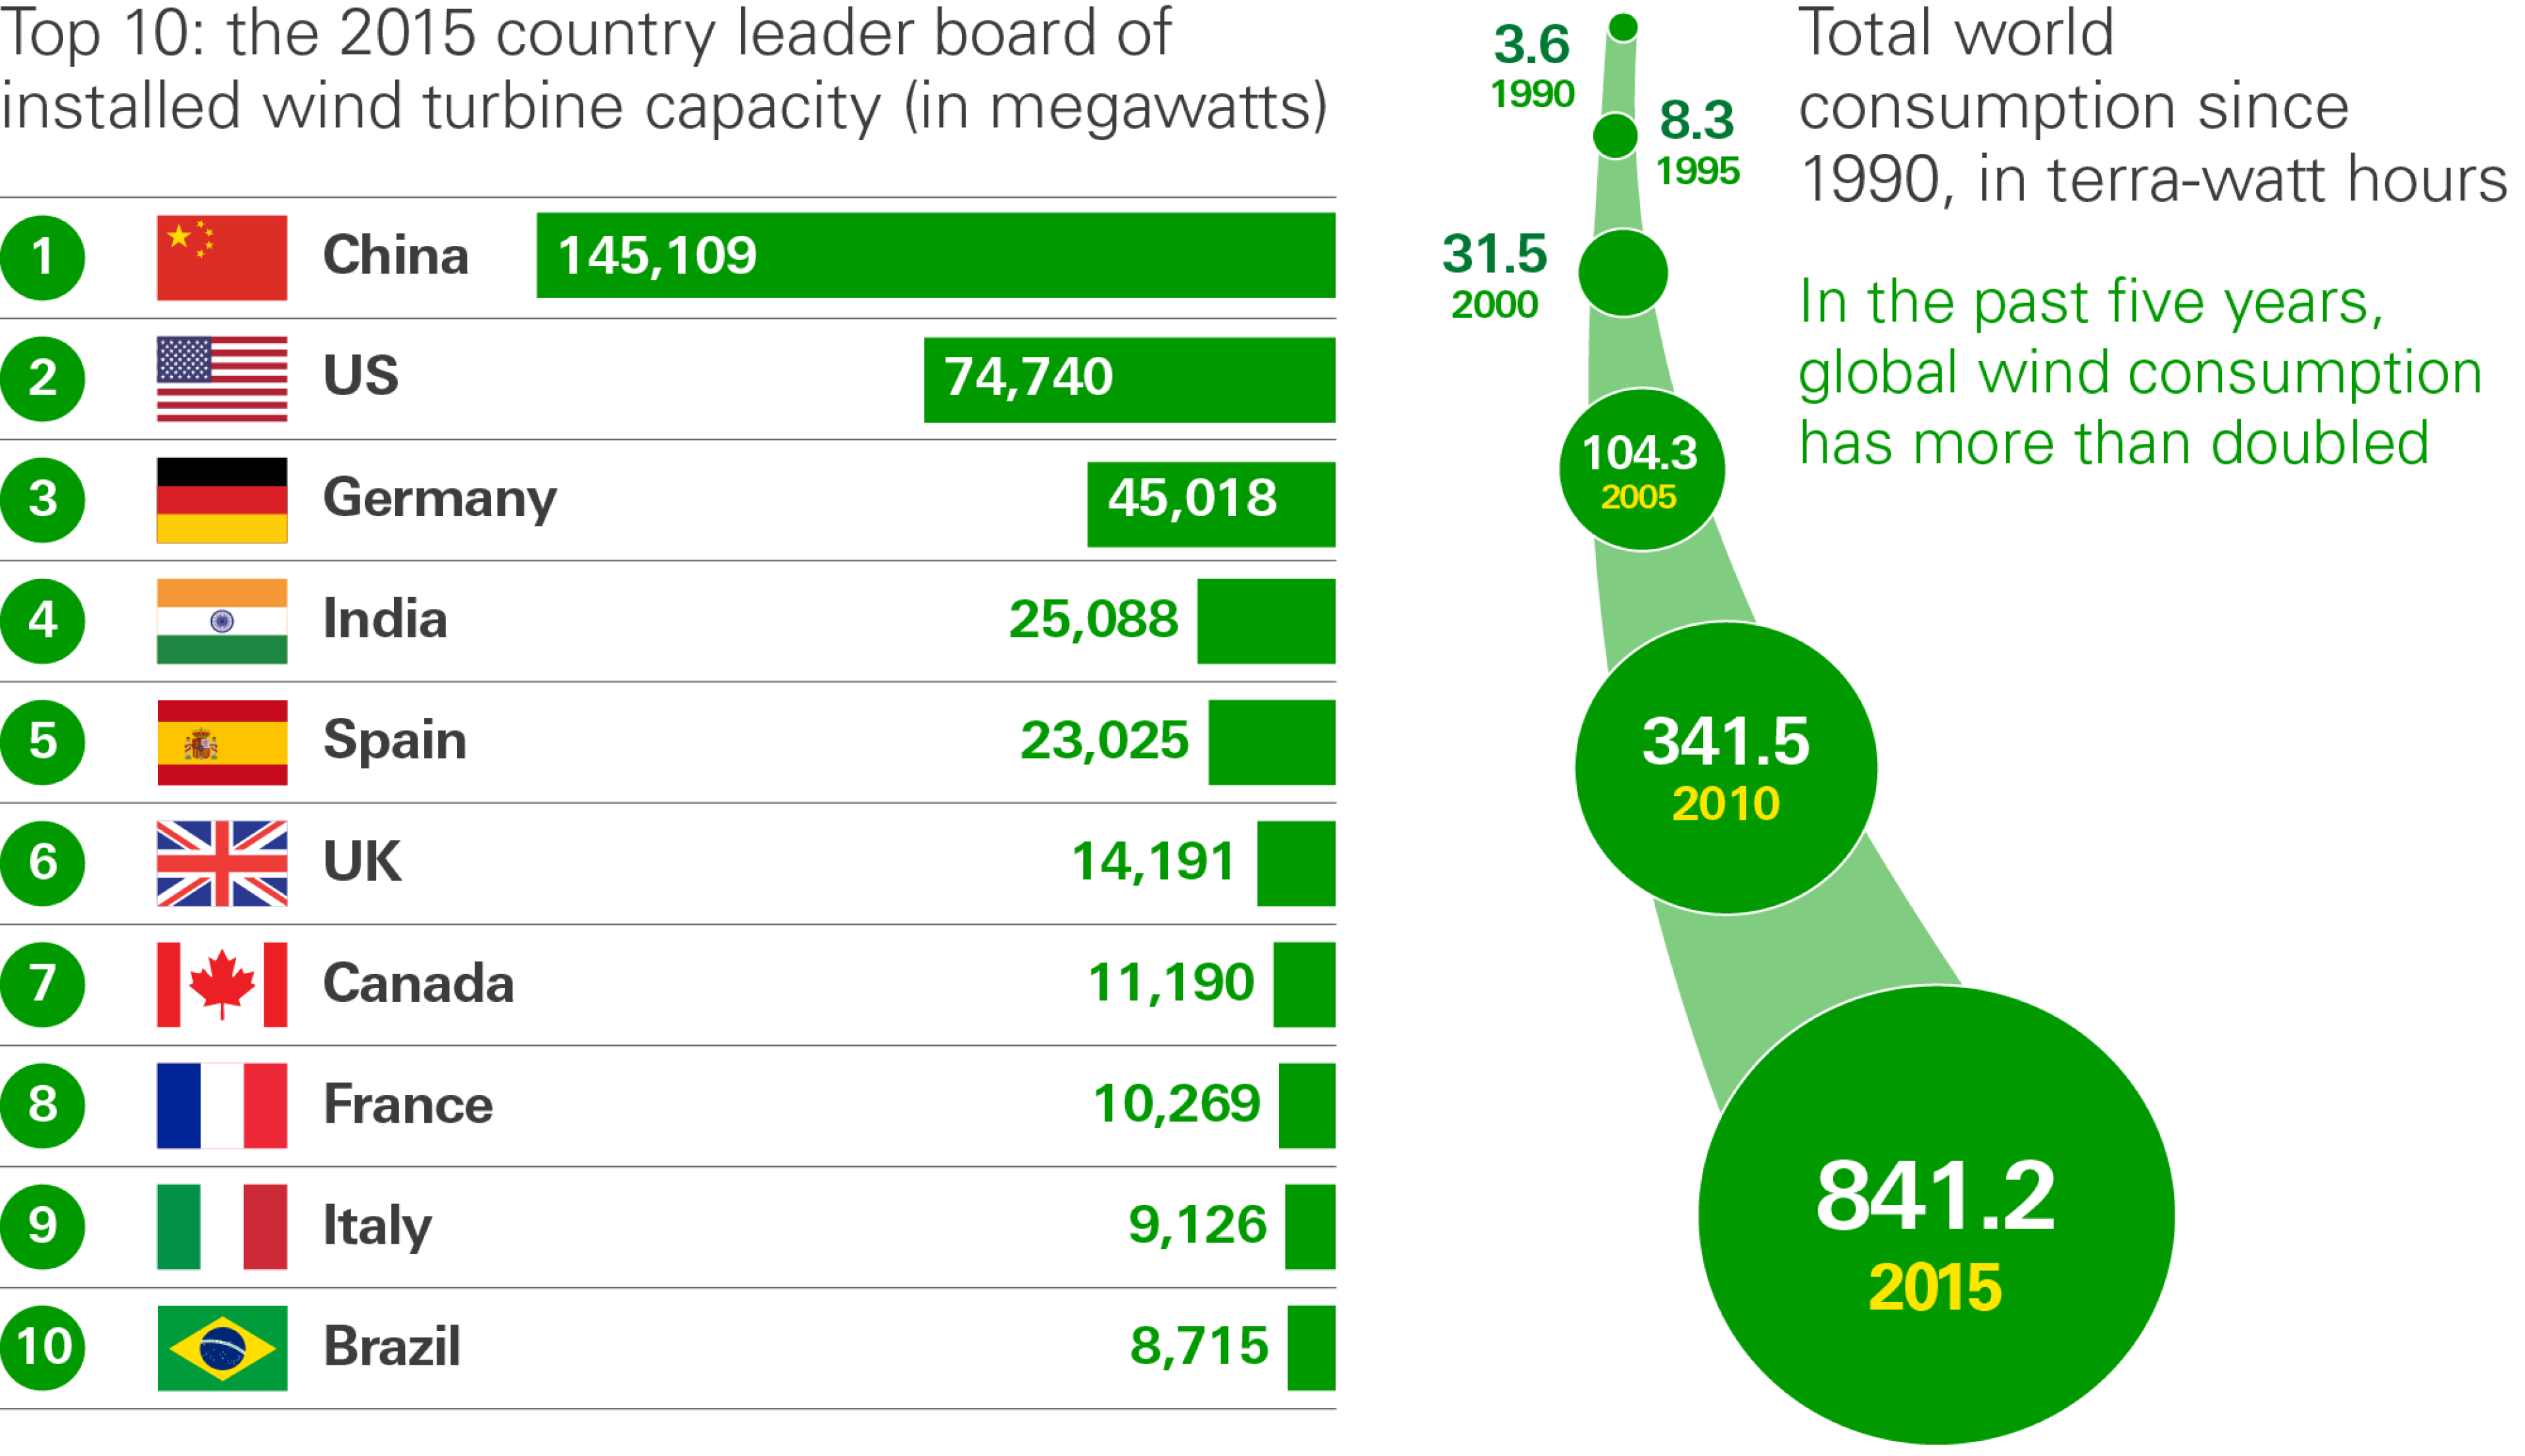 Graphic shows top 10 countries in 2015 with most installed wind turbine capacity in megawatts